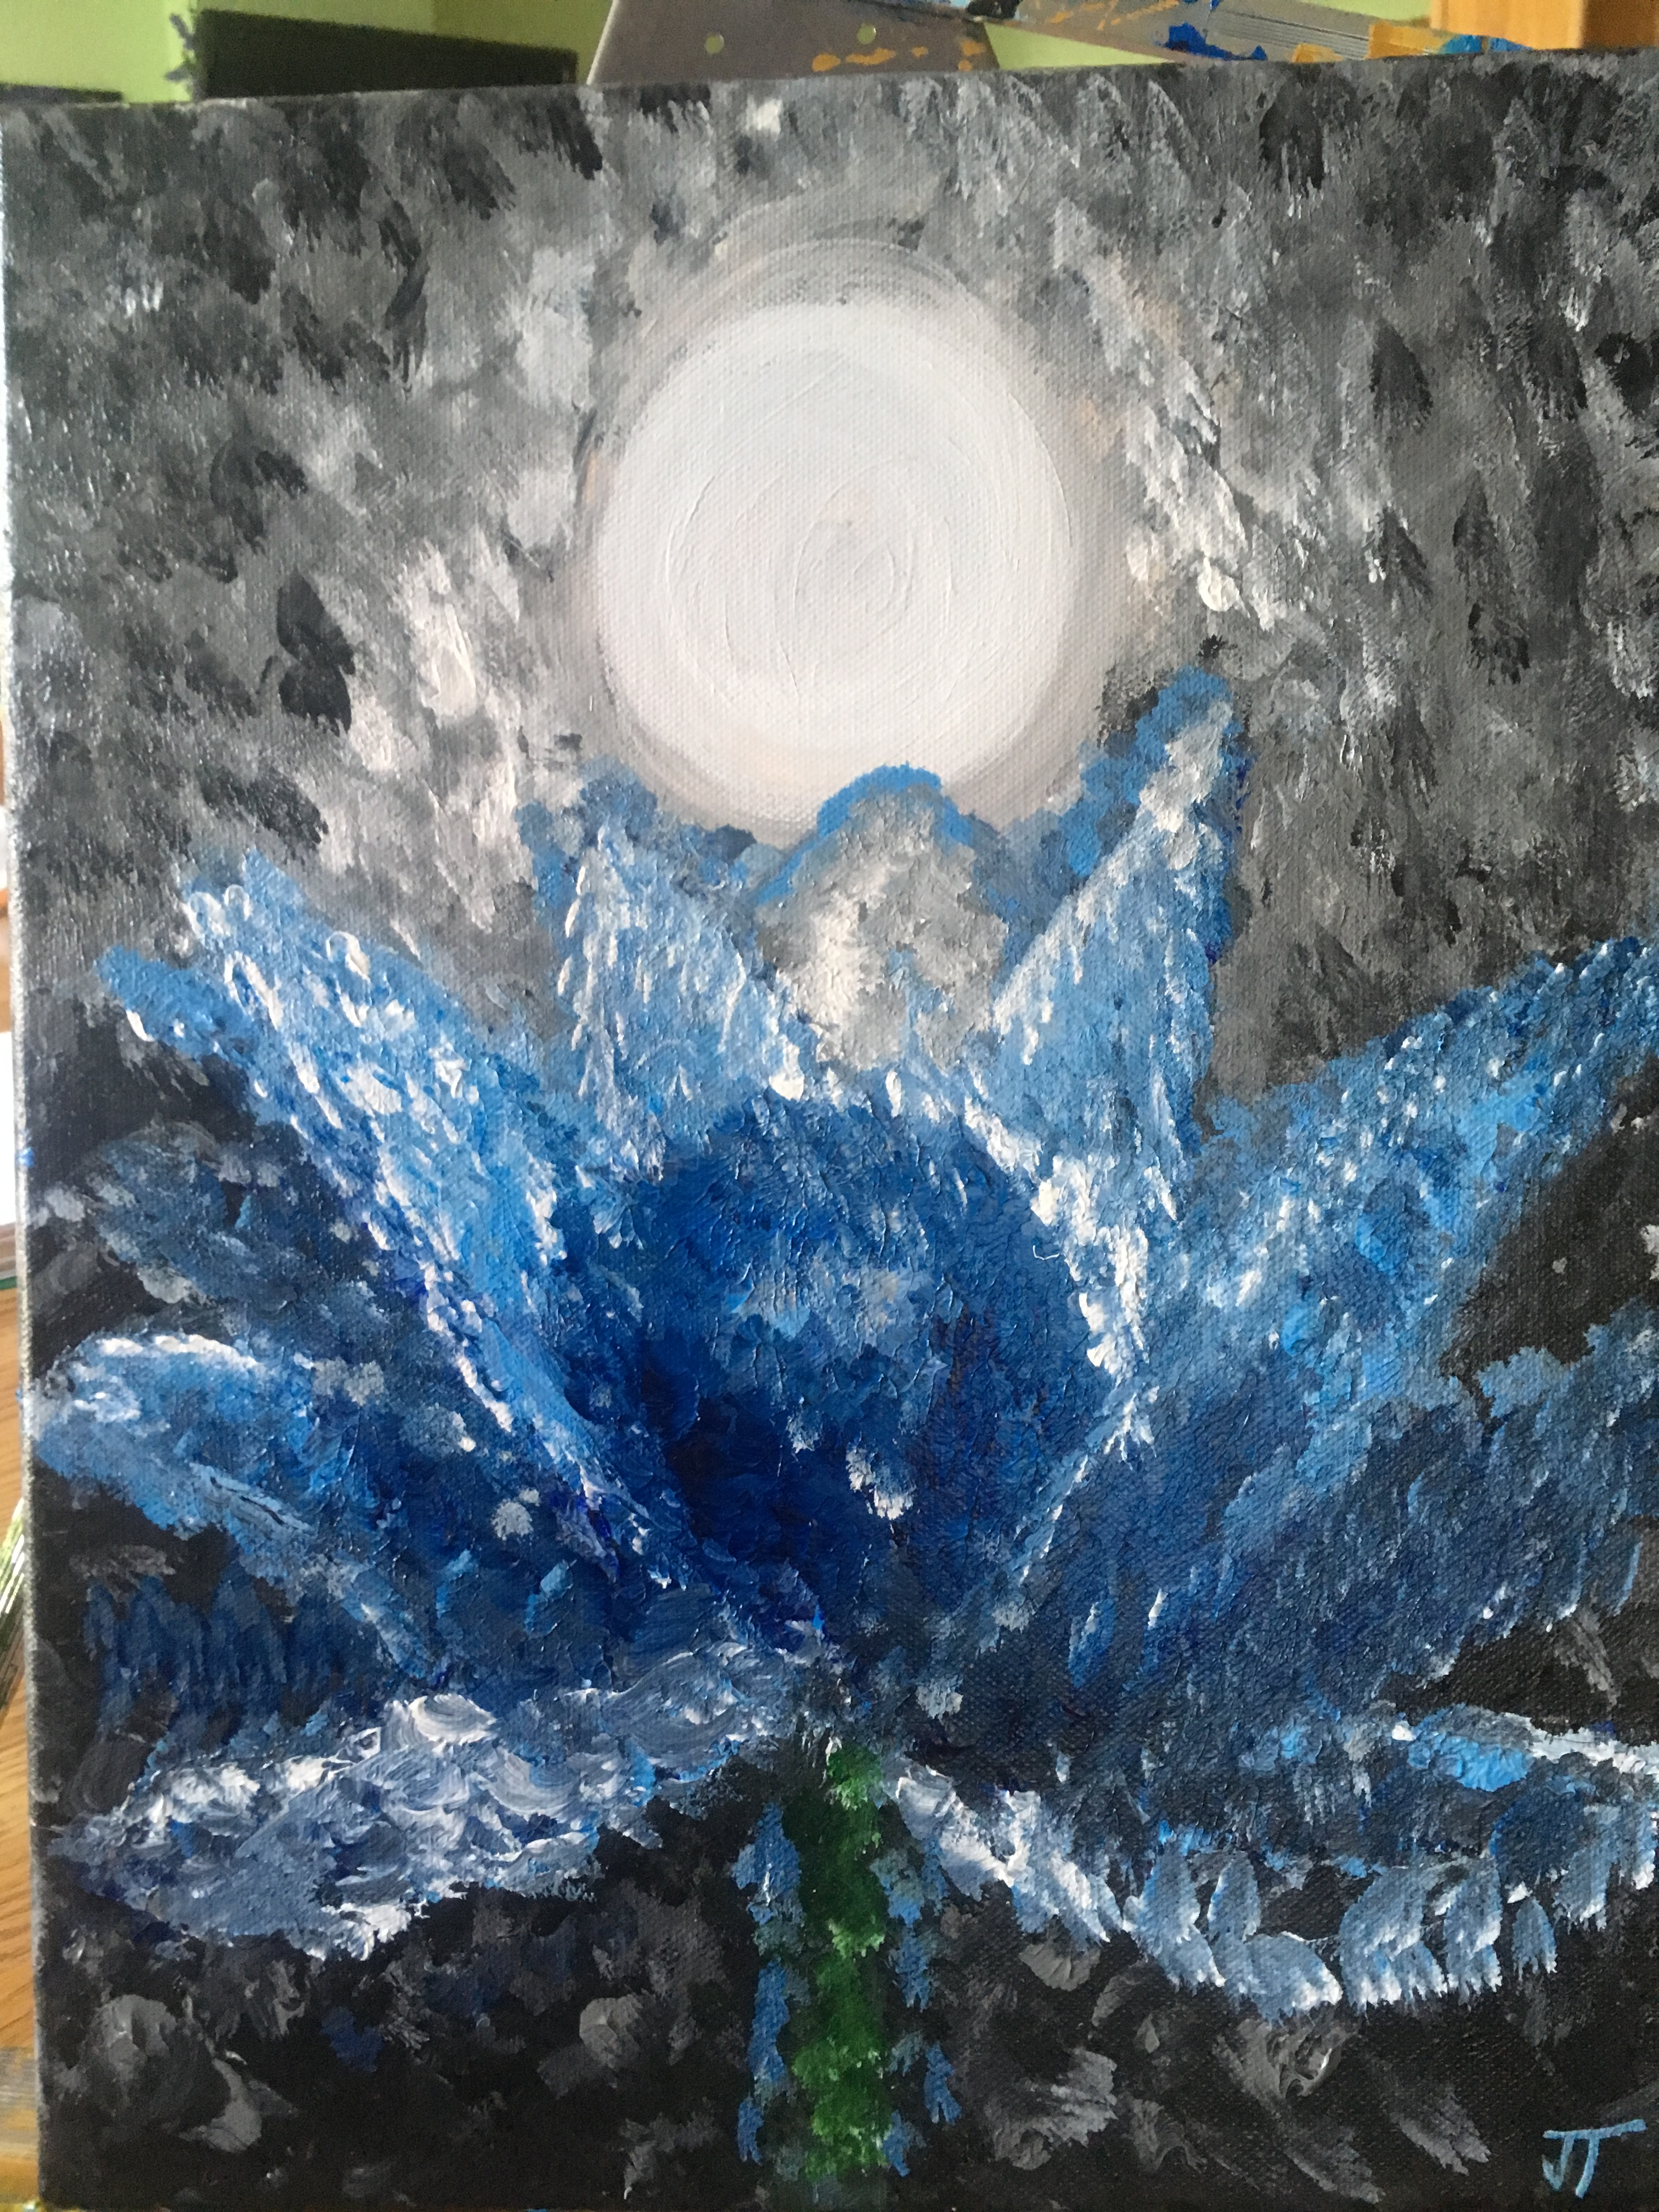 Moon With Blue Lotus Flower Janets Art Planet